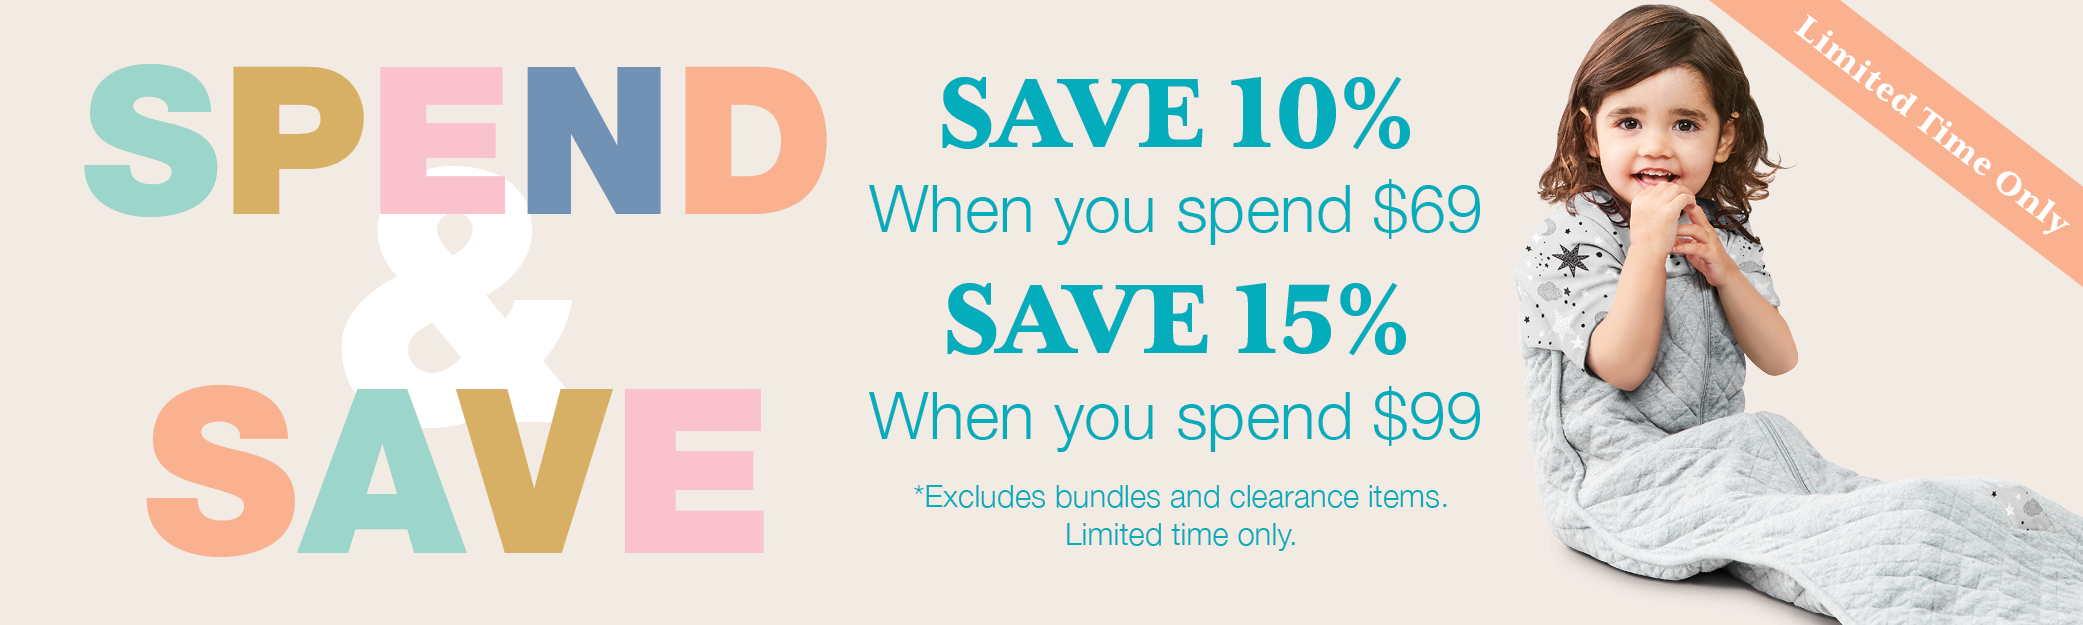 love-to-dream-spend-save-promo-ppp-banner.png